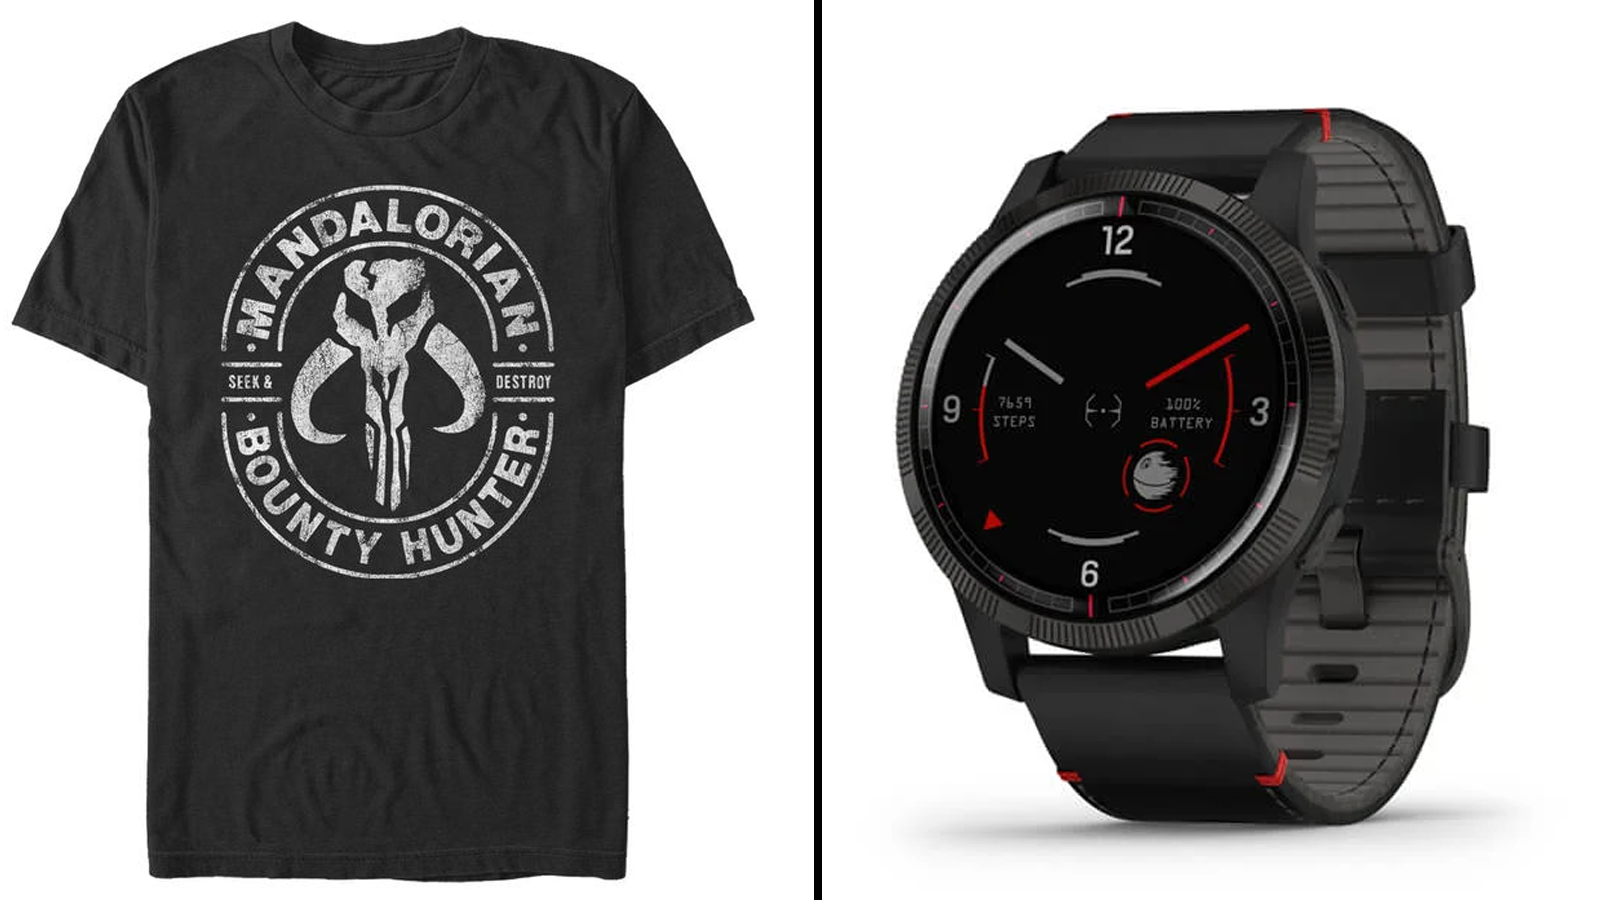 Mandalorian-style t-shirt, Garmin smartwatch with Darth Vader theme